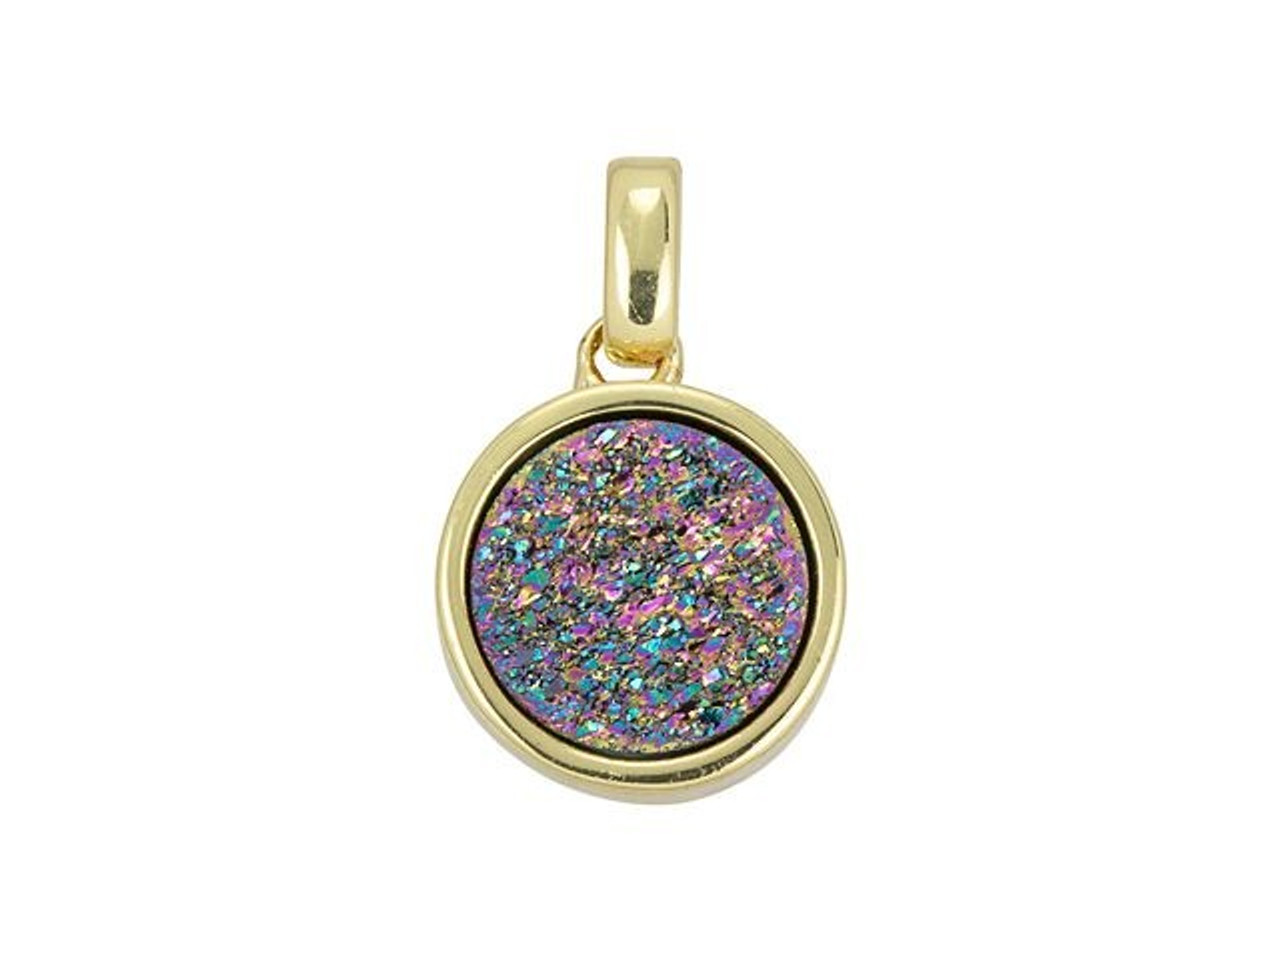 Silver Healing crystal stone Horn Pendant Necklace Charm Jewelry Rainbow Titanium Druzy Crescent Moon Horn Charm Pendant with Gold Bails